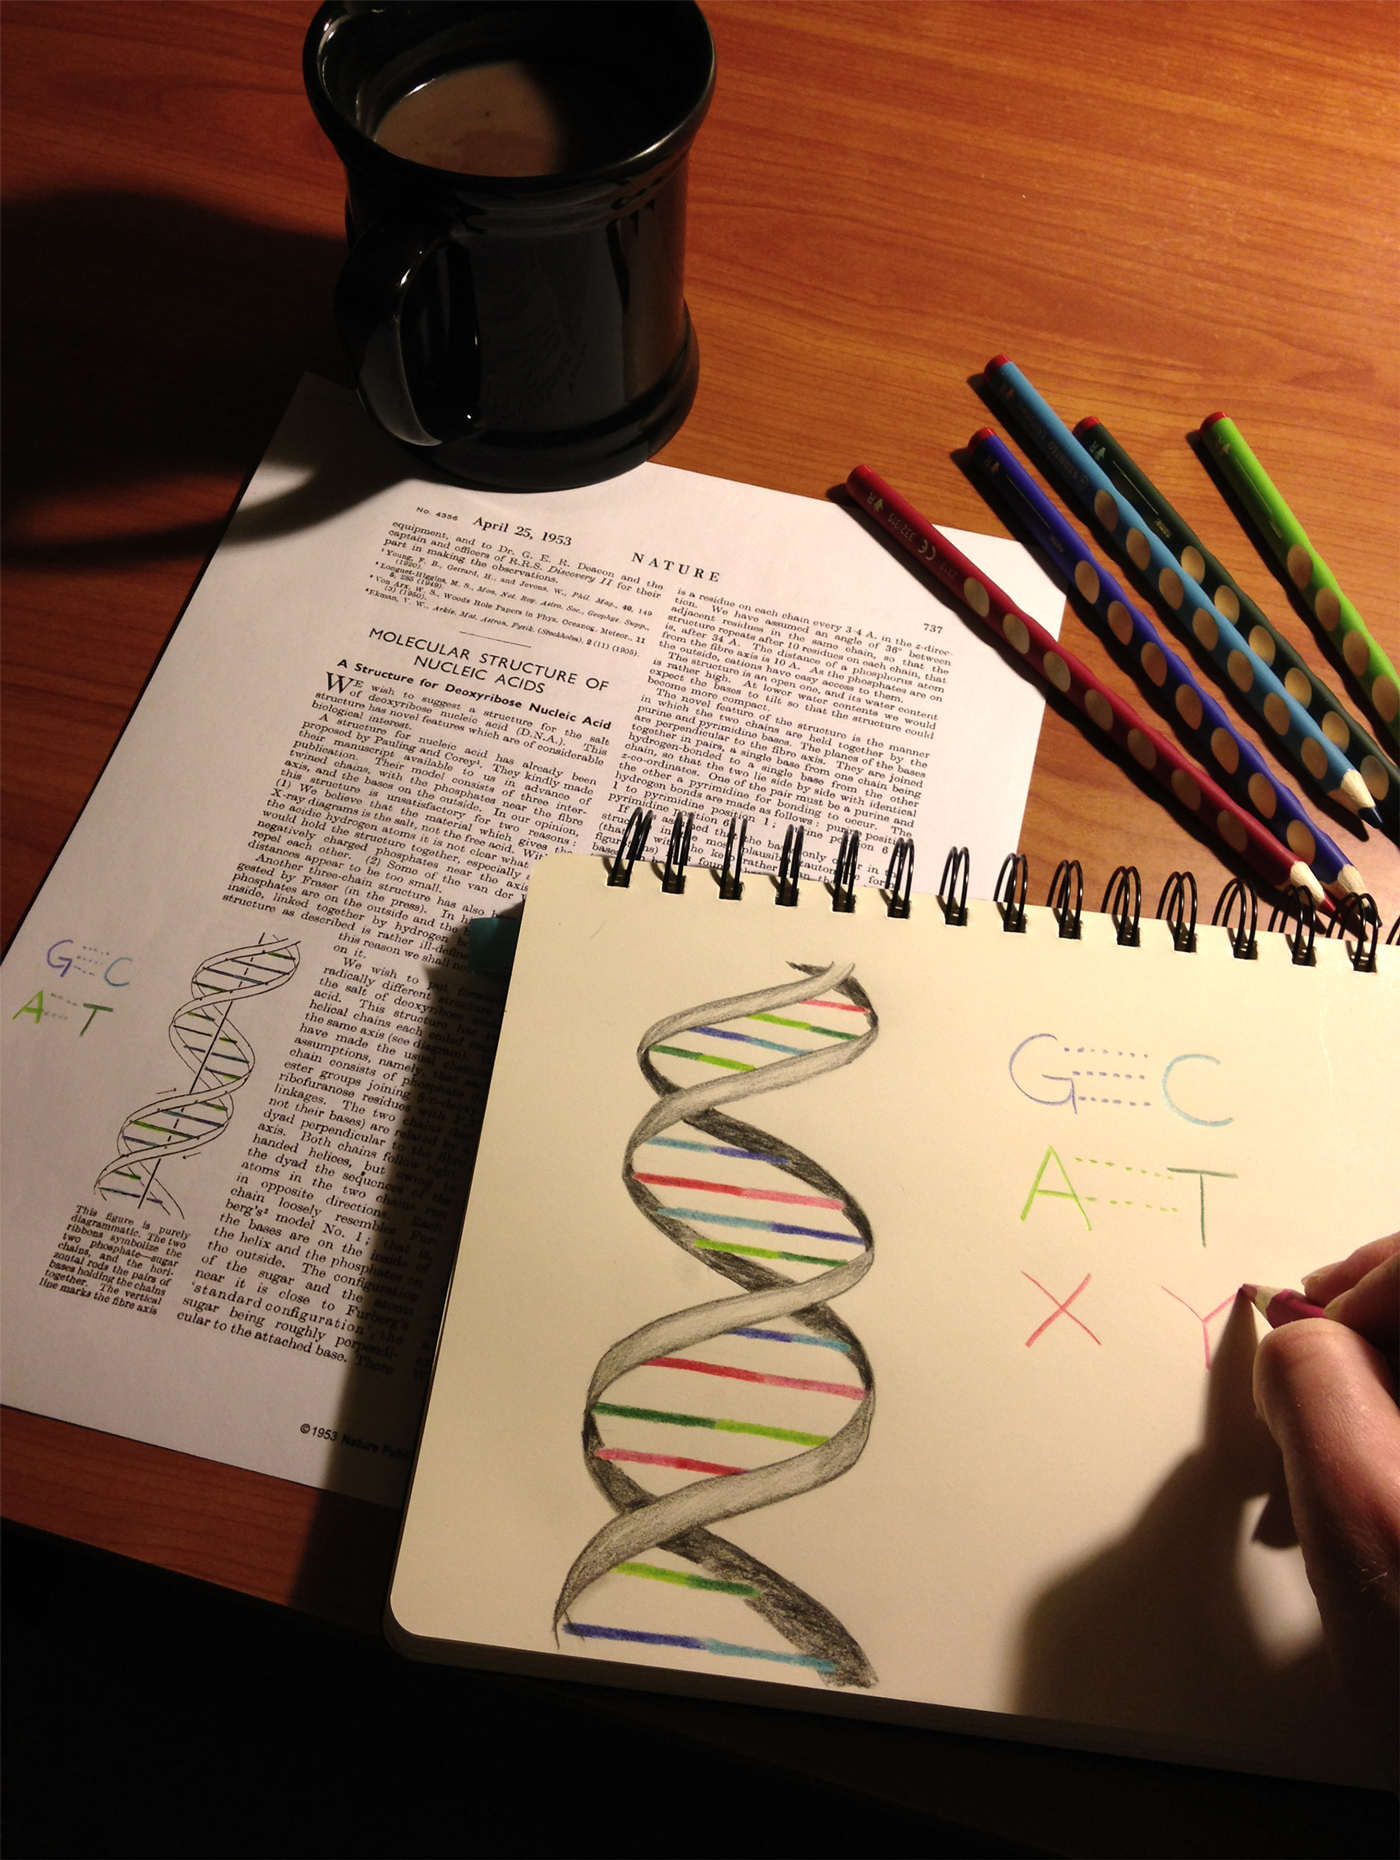 By adding the DNA letters X and Y, cells can make proteins with up to 172 different amino acids—compared to nature's set of 20.